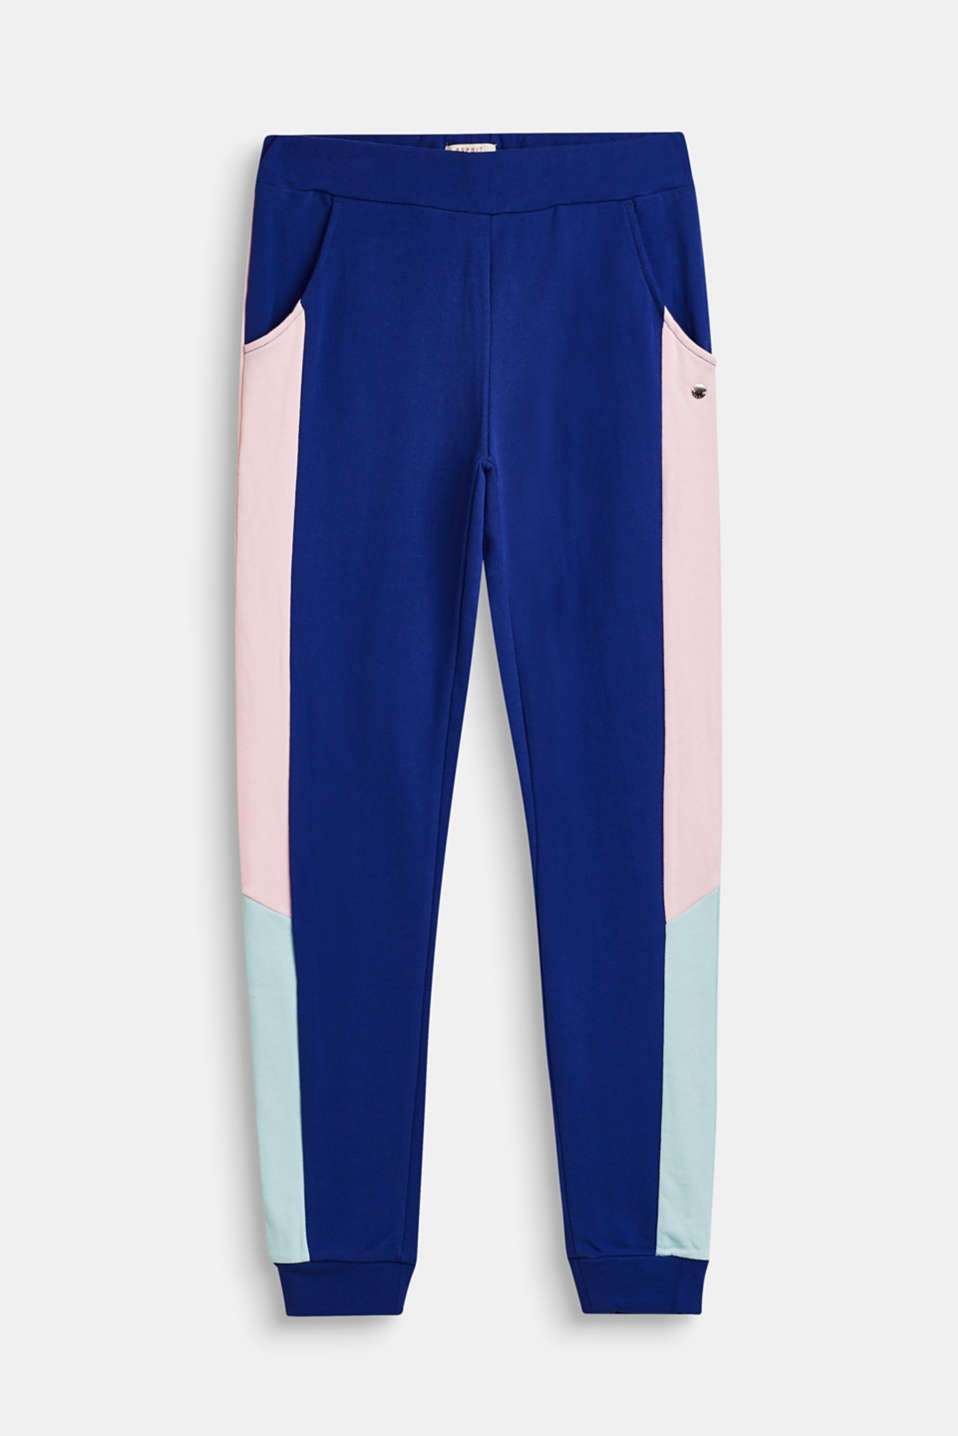 Esprit - Colour block tracksuit bottoms in 100% cotton